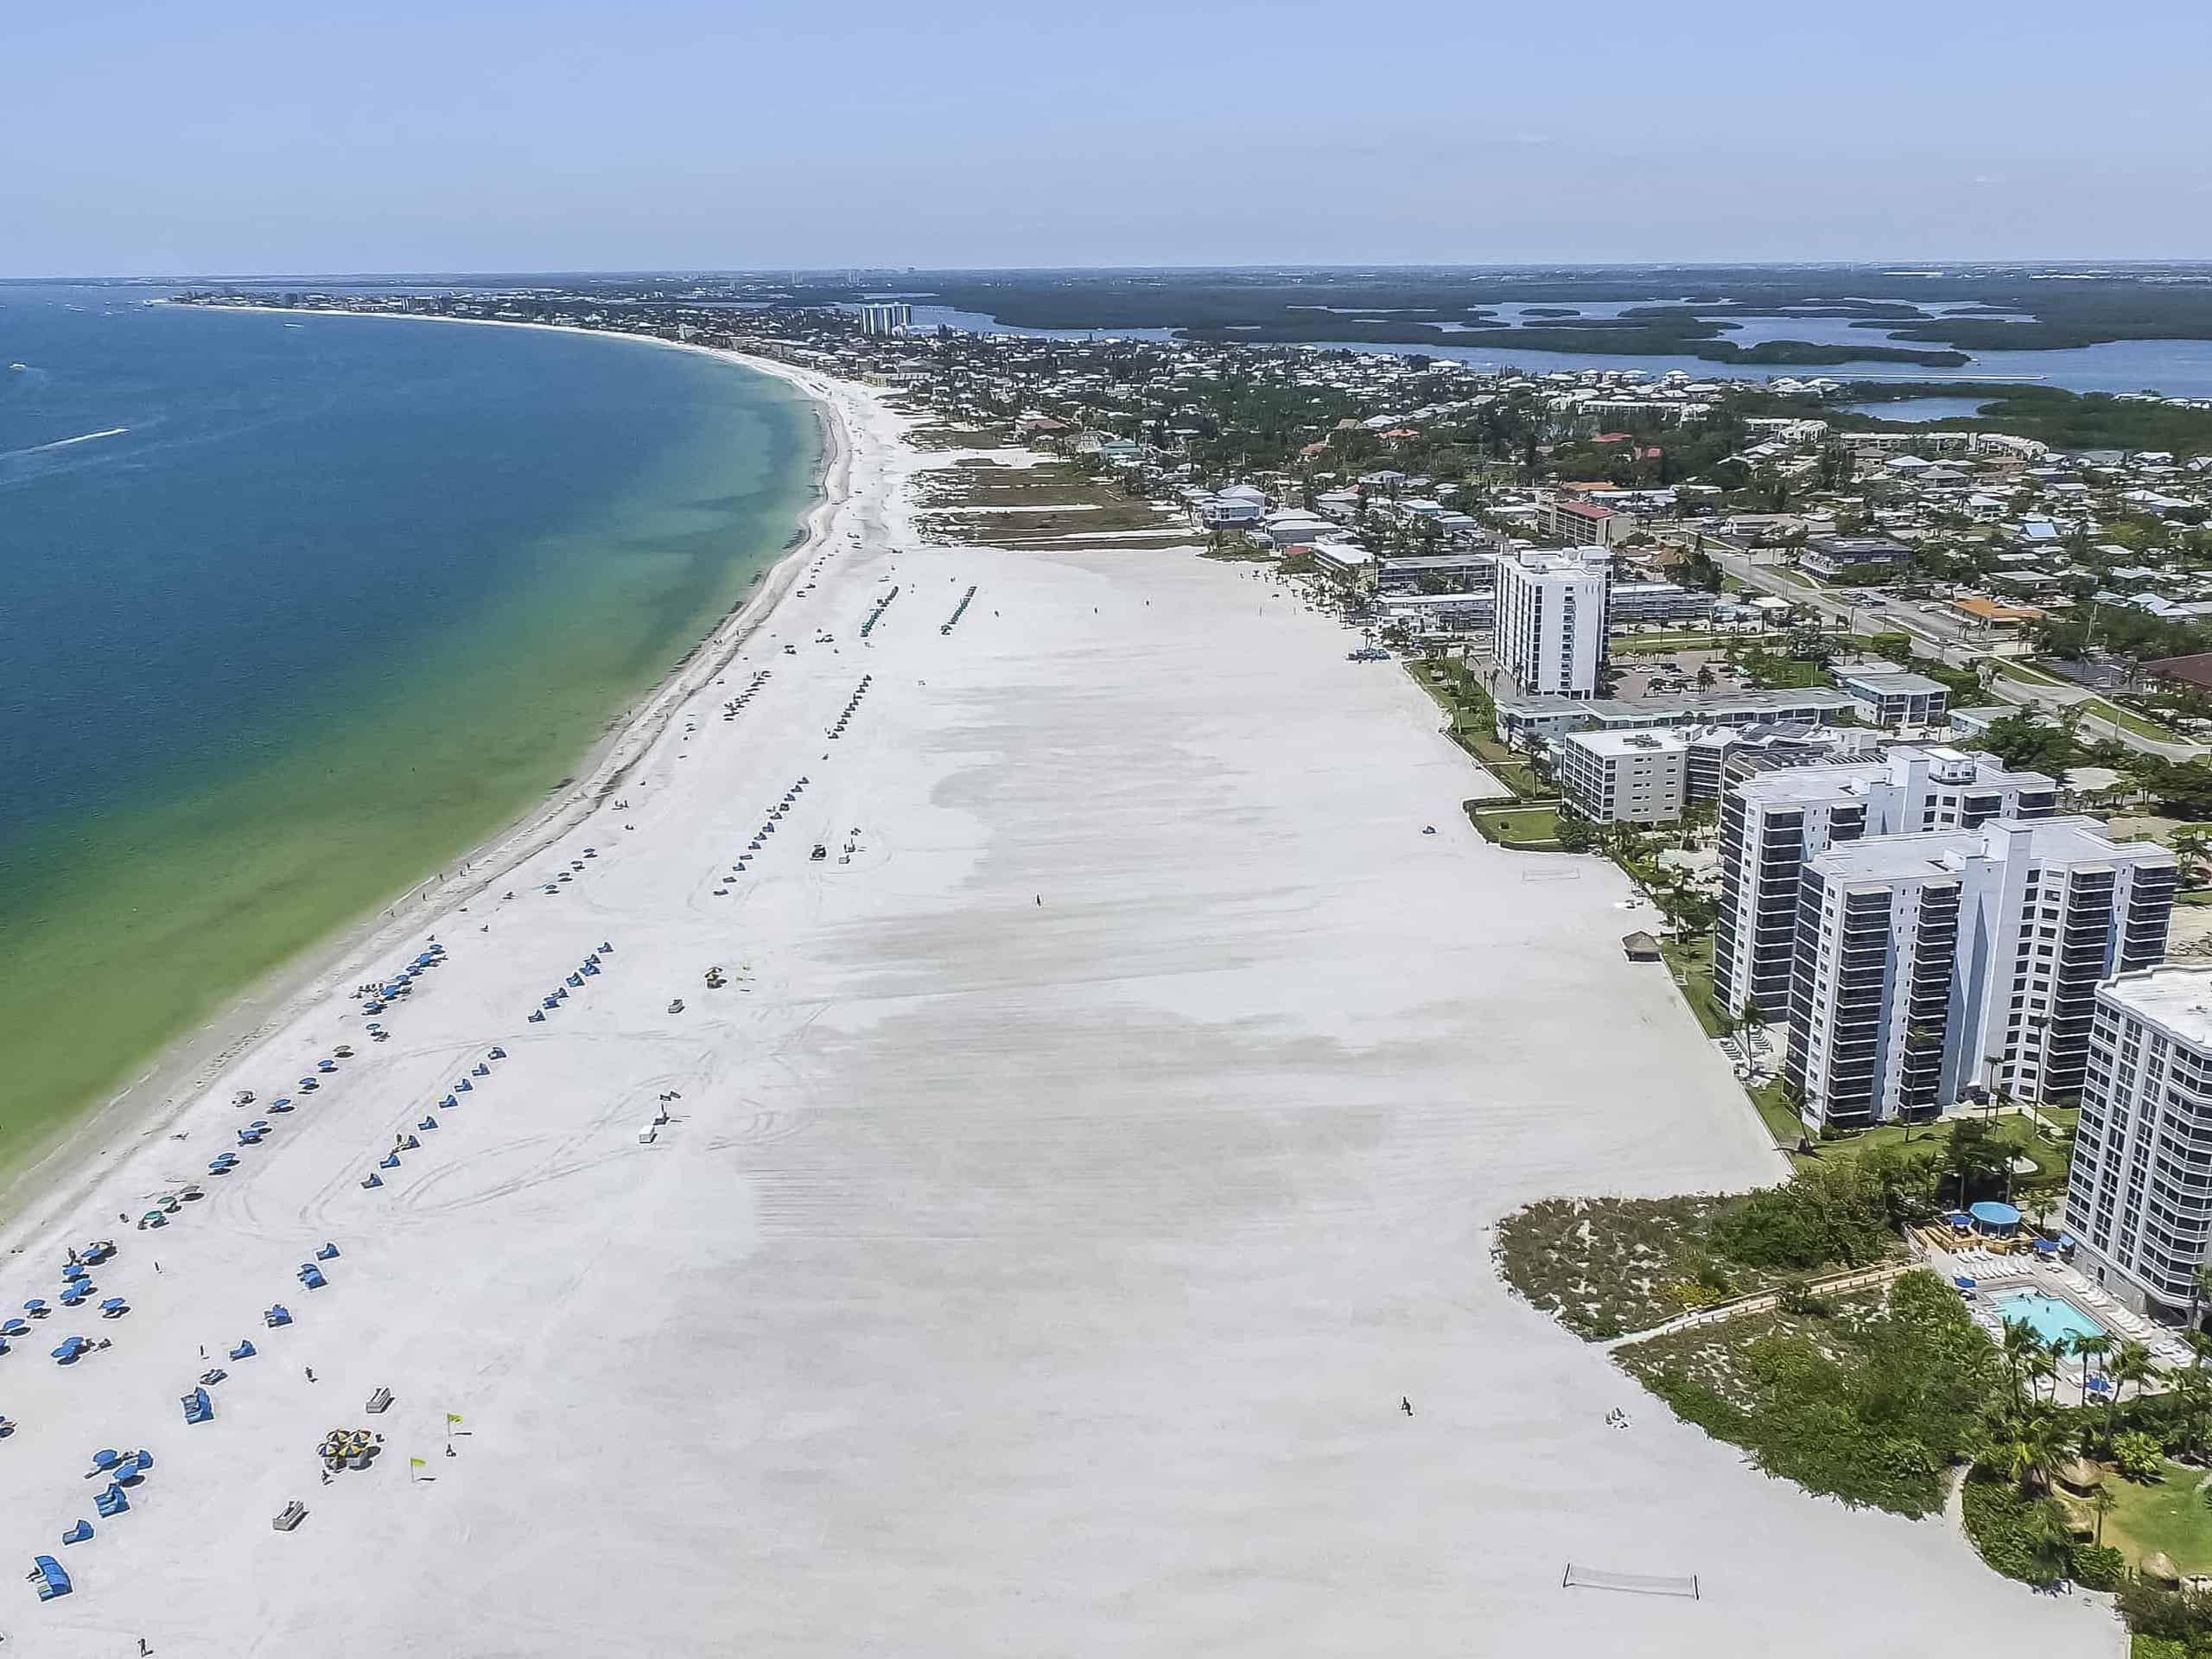 arial view of the ocean and beach in fort myers beach, florida